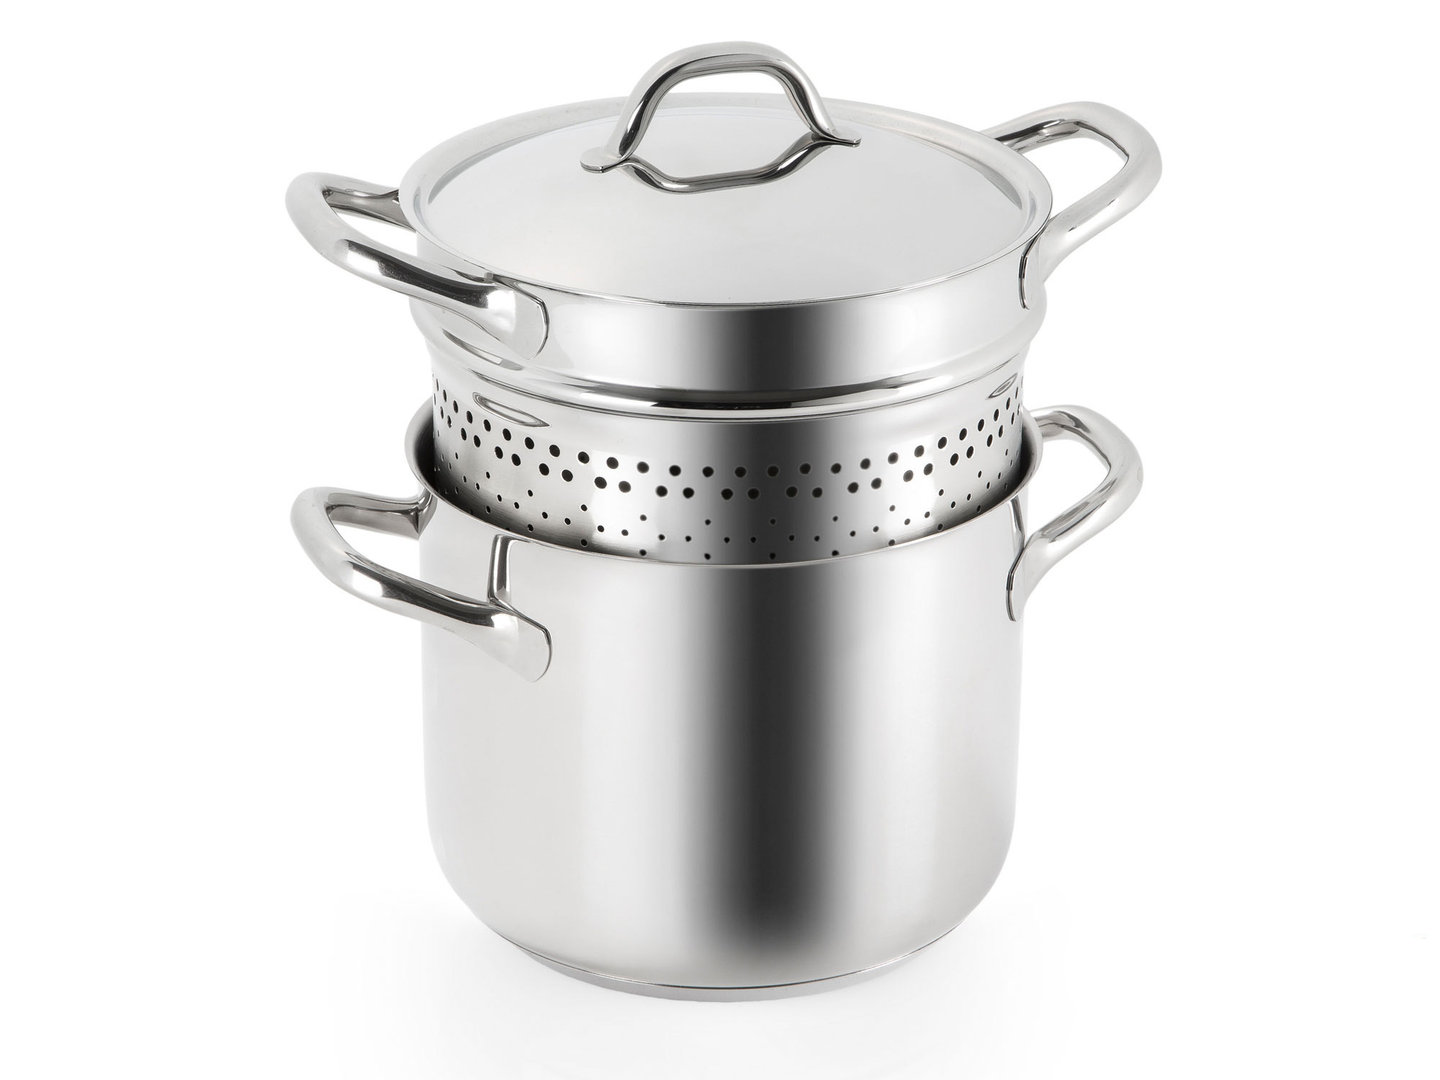 BARAZZONI pasta cooker CHEF LINE stainless steel 22 cm 6 liters